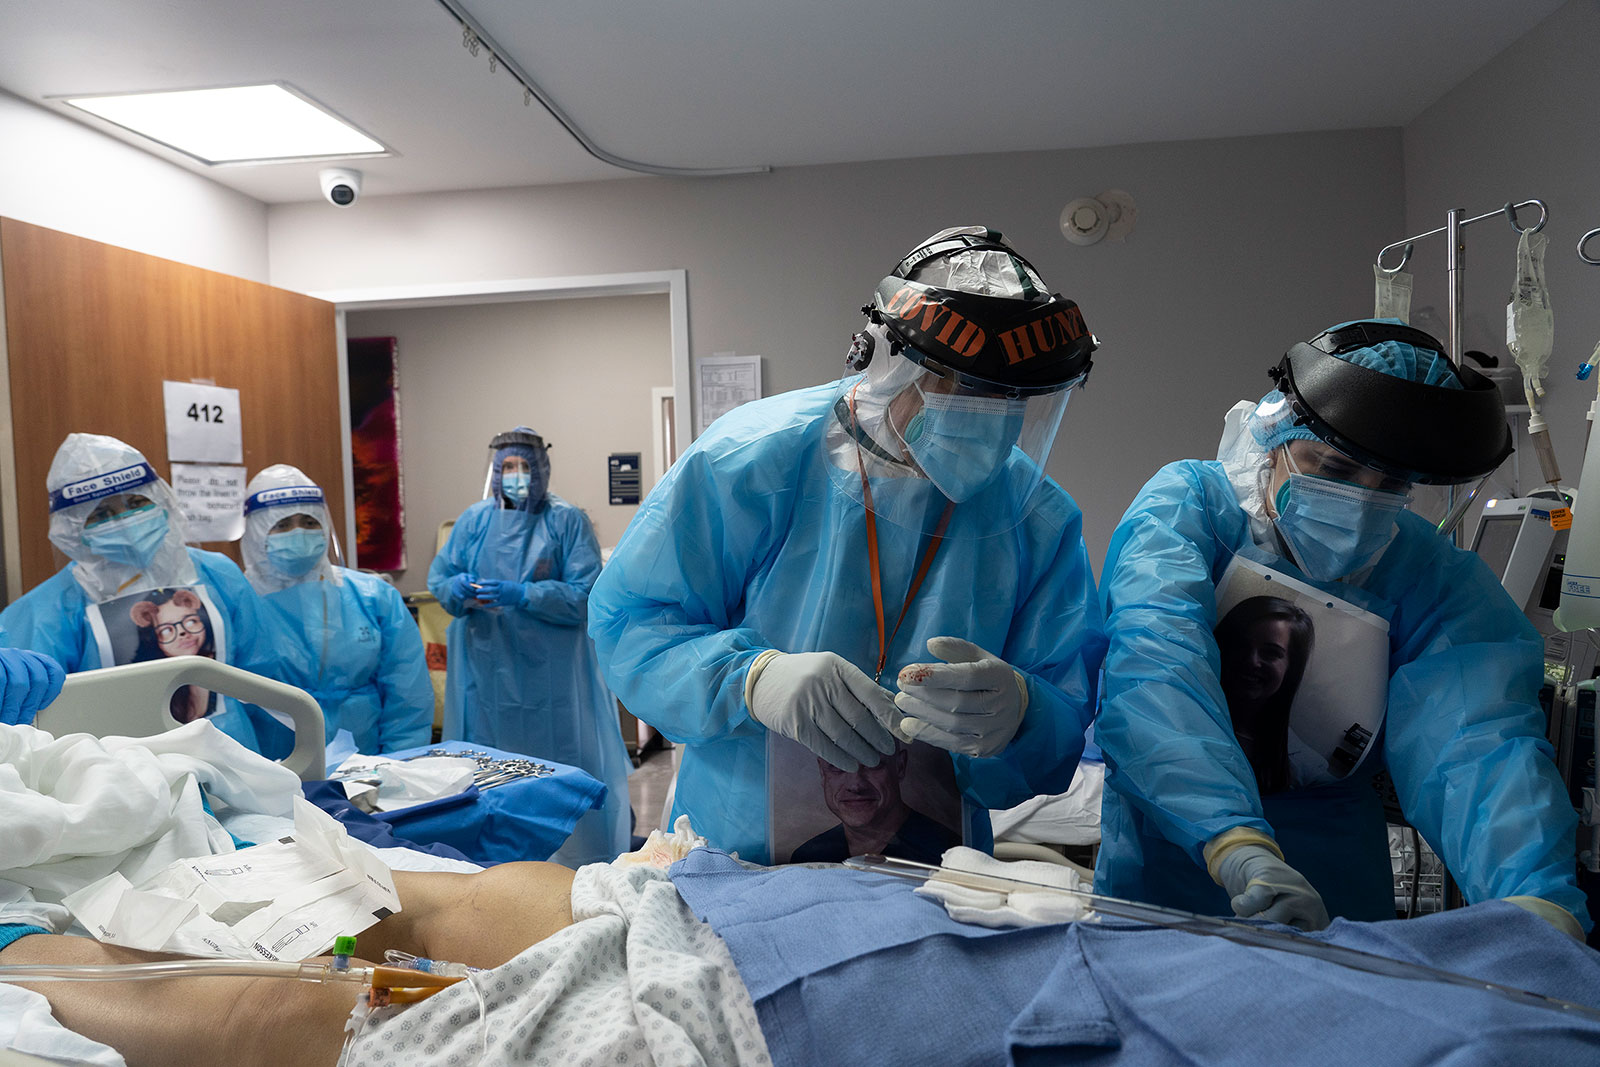 Medical staff treat a coronavirus patient at United Memorial Medical Center in Houston, Texas, on November 14.